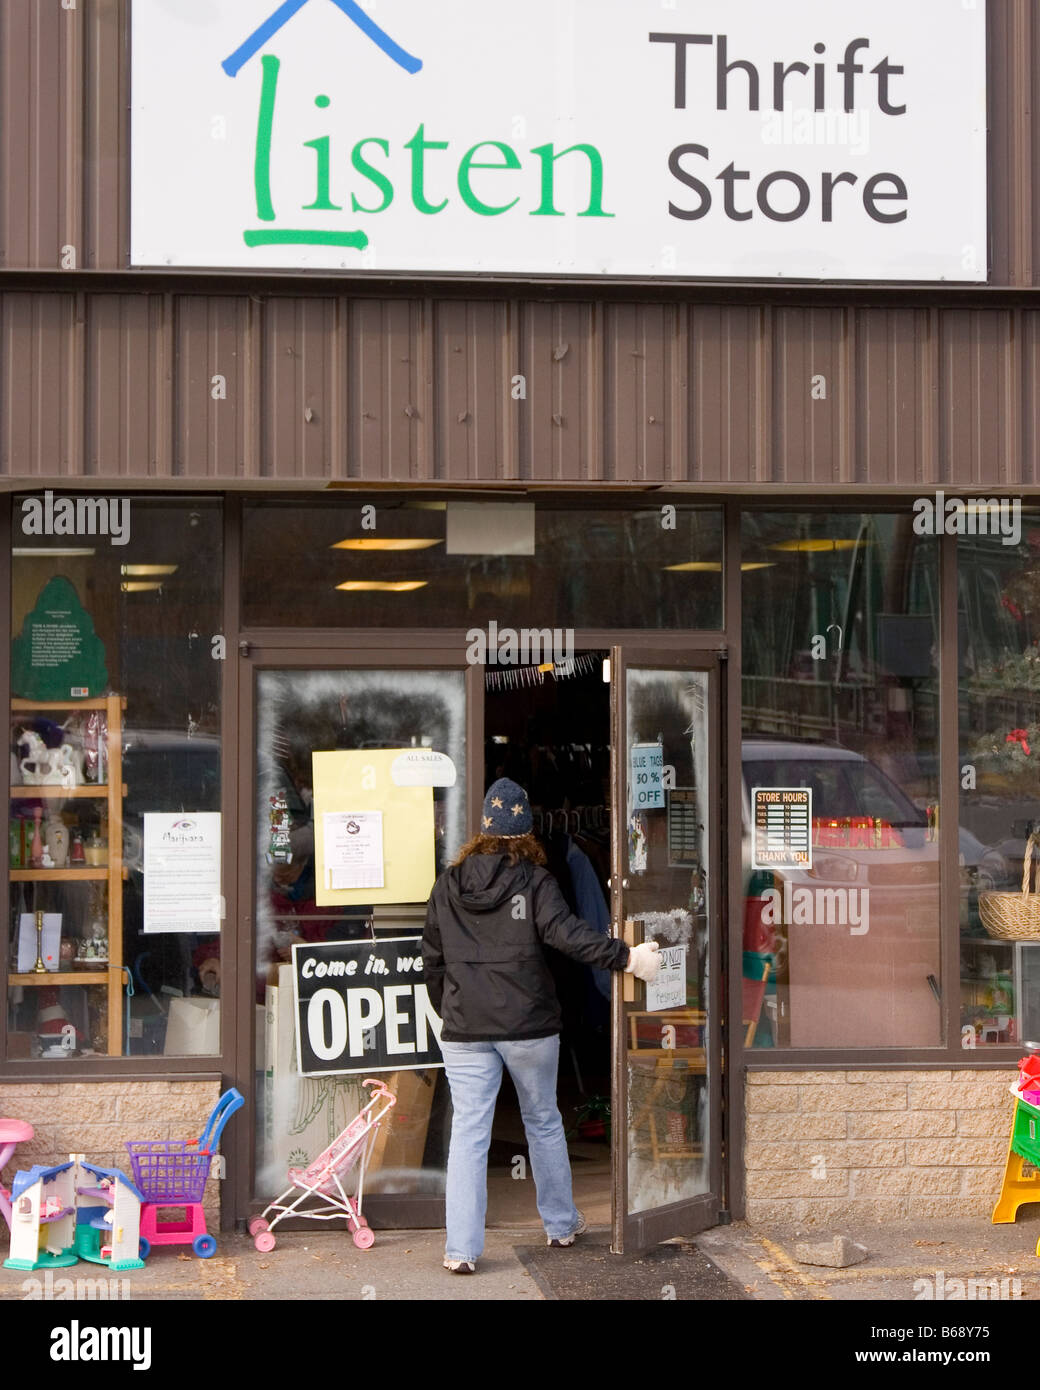 Charity shop, thrift store, also known as second hand store. - Stock Image